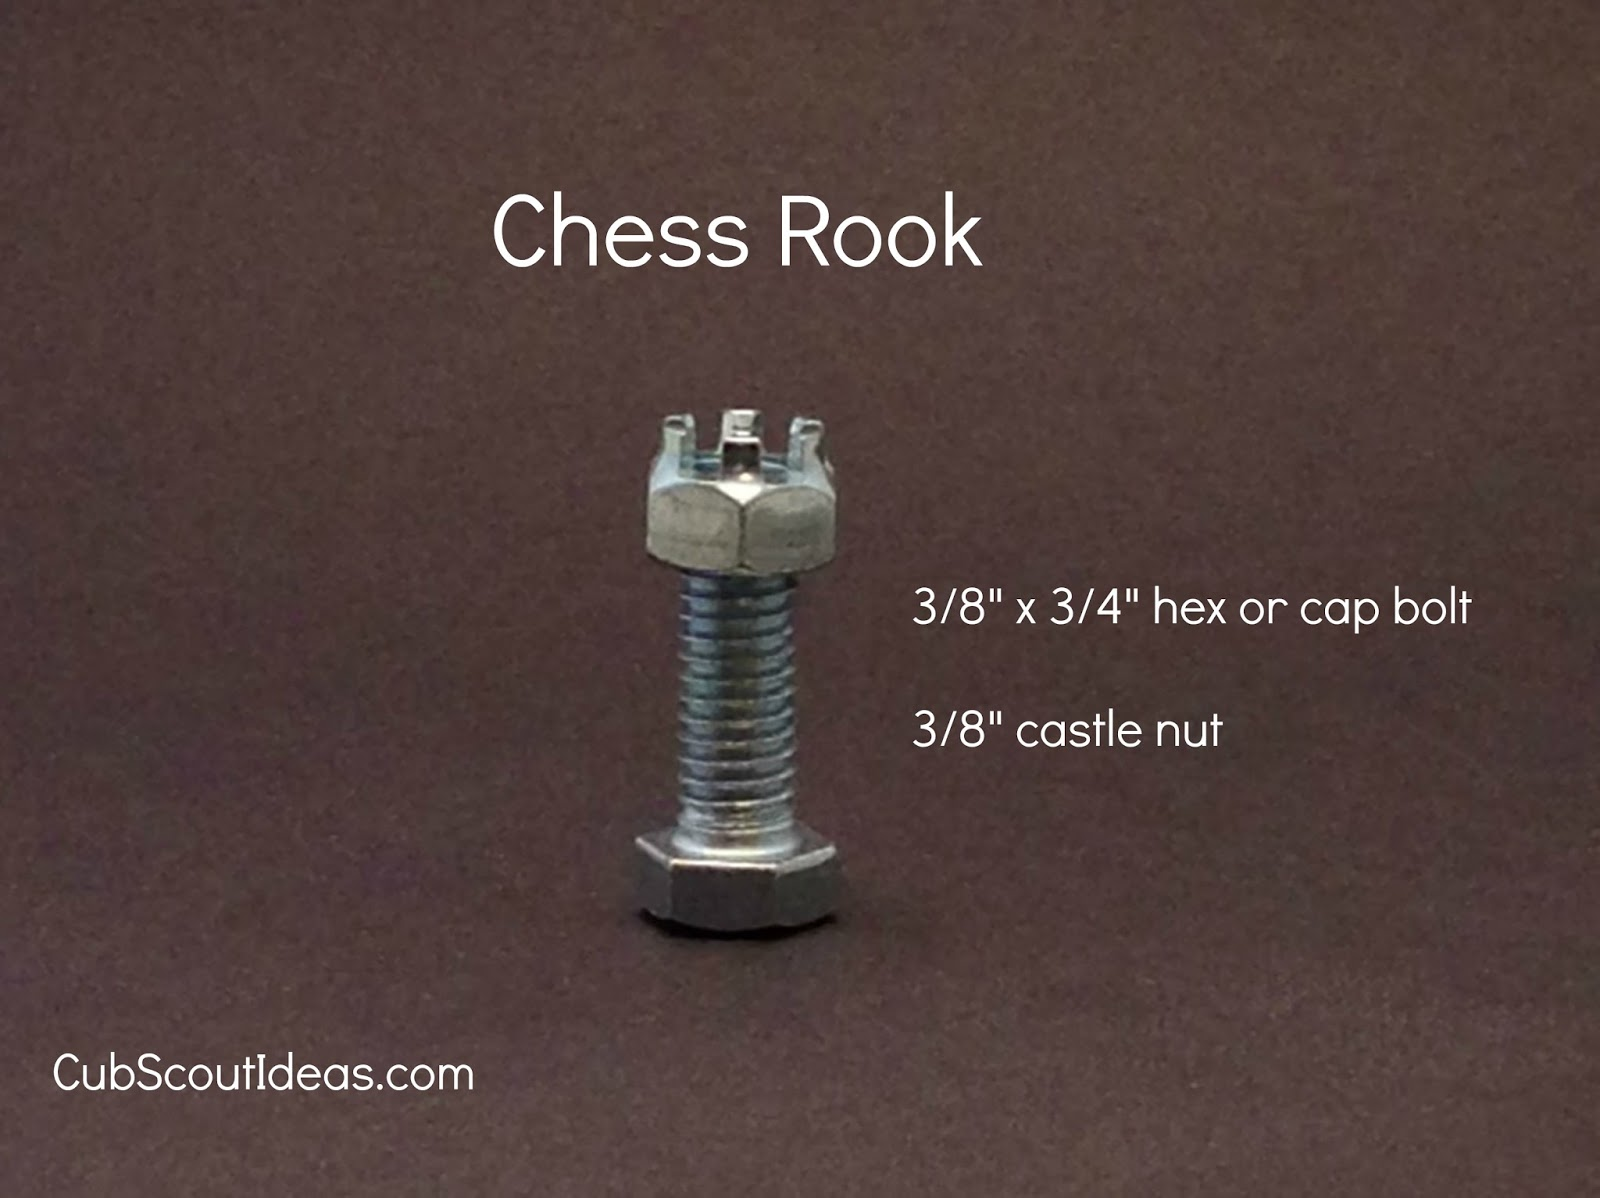 Build Your Own Nuts & Bolts Chess Set